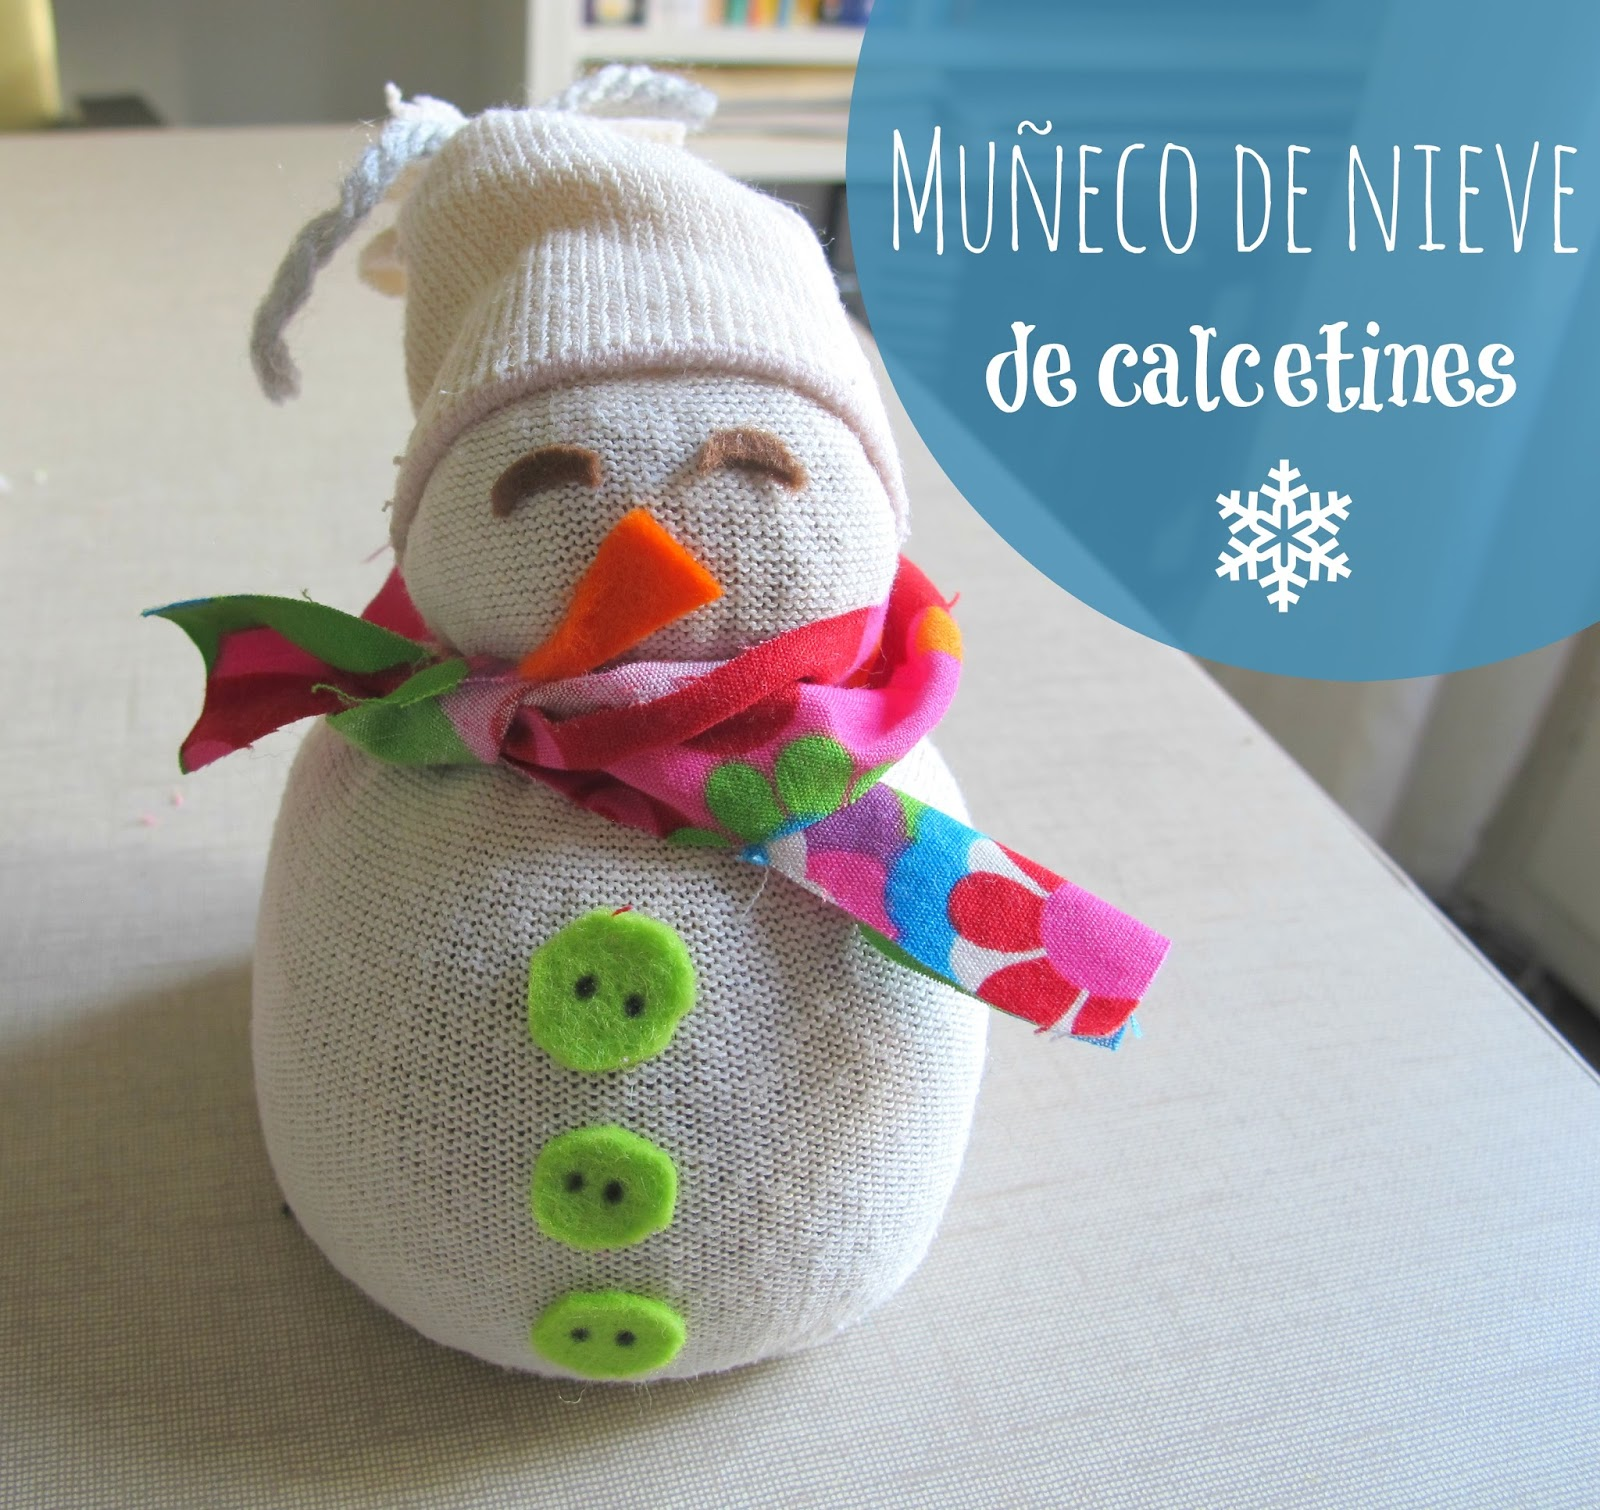 mu eco de nieve hecho con calcetines handbox craft